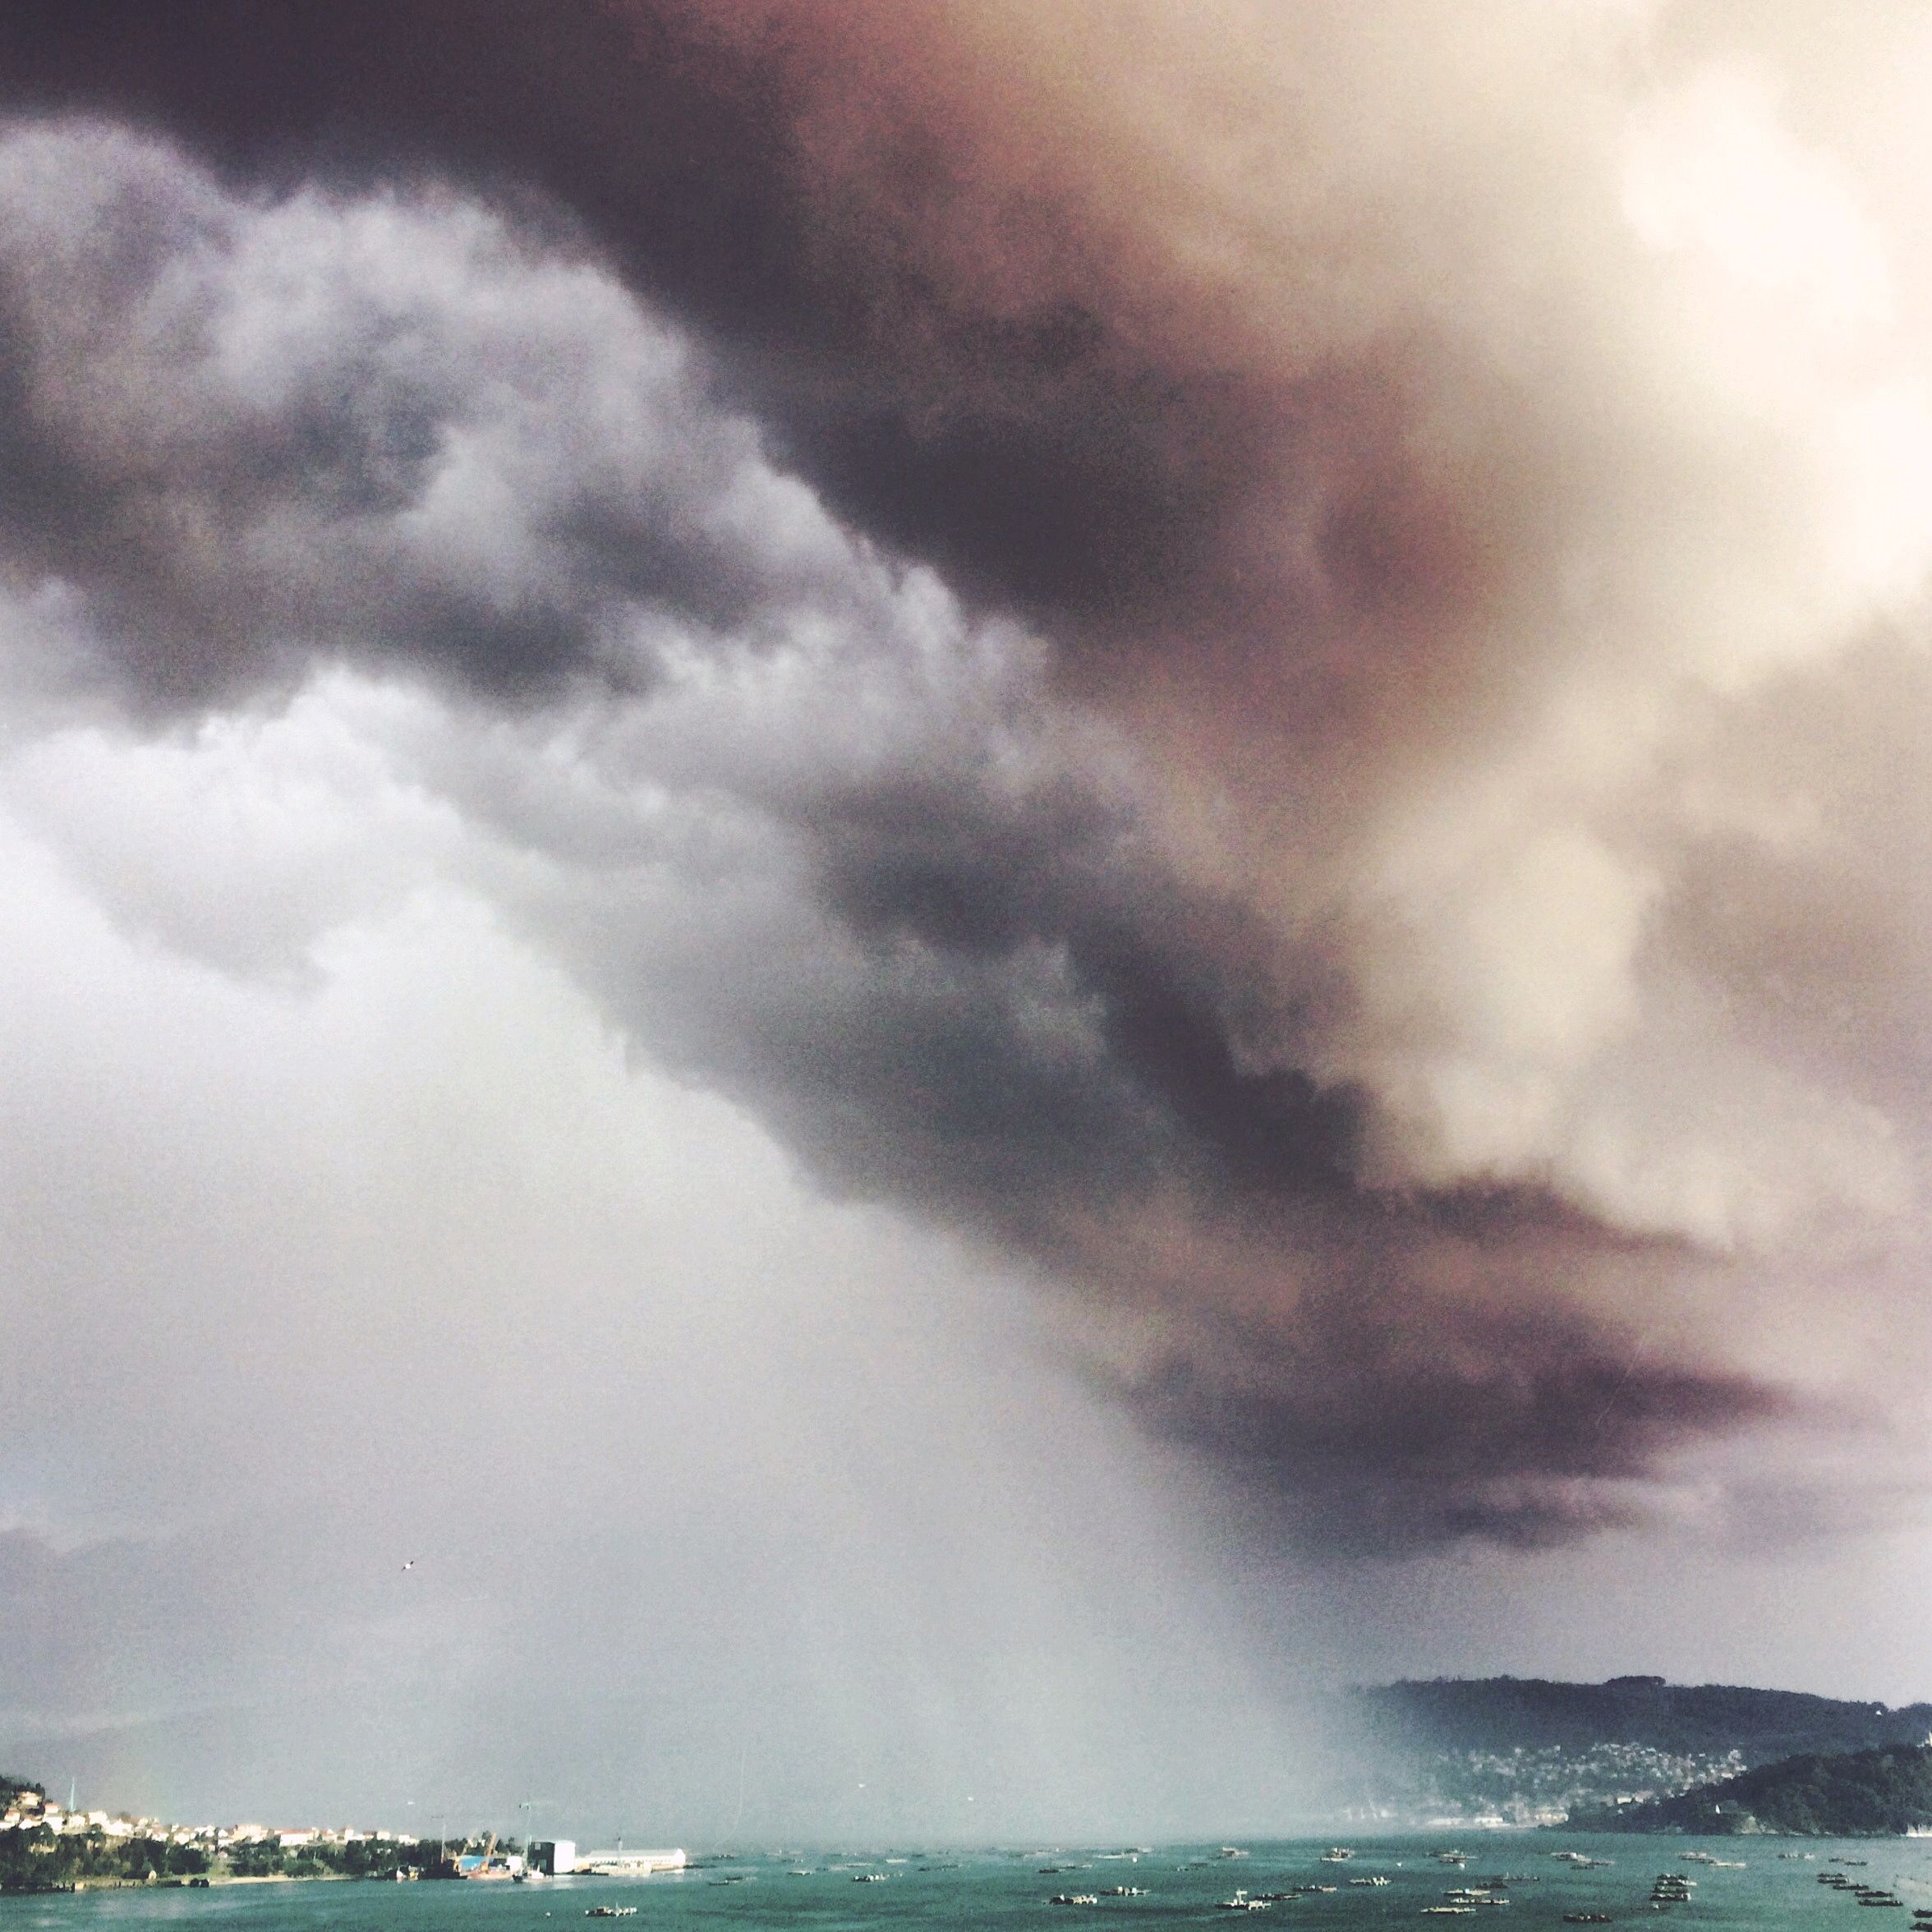 A Storm Approaches.  Photo by Instagram user andreshermelo.  #olloclip #wideangle #storm